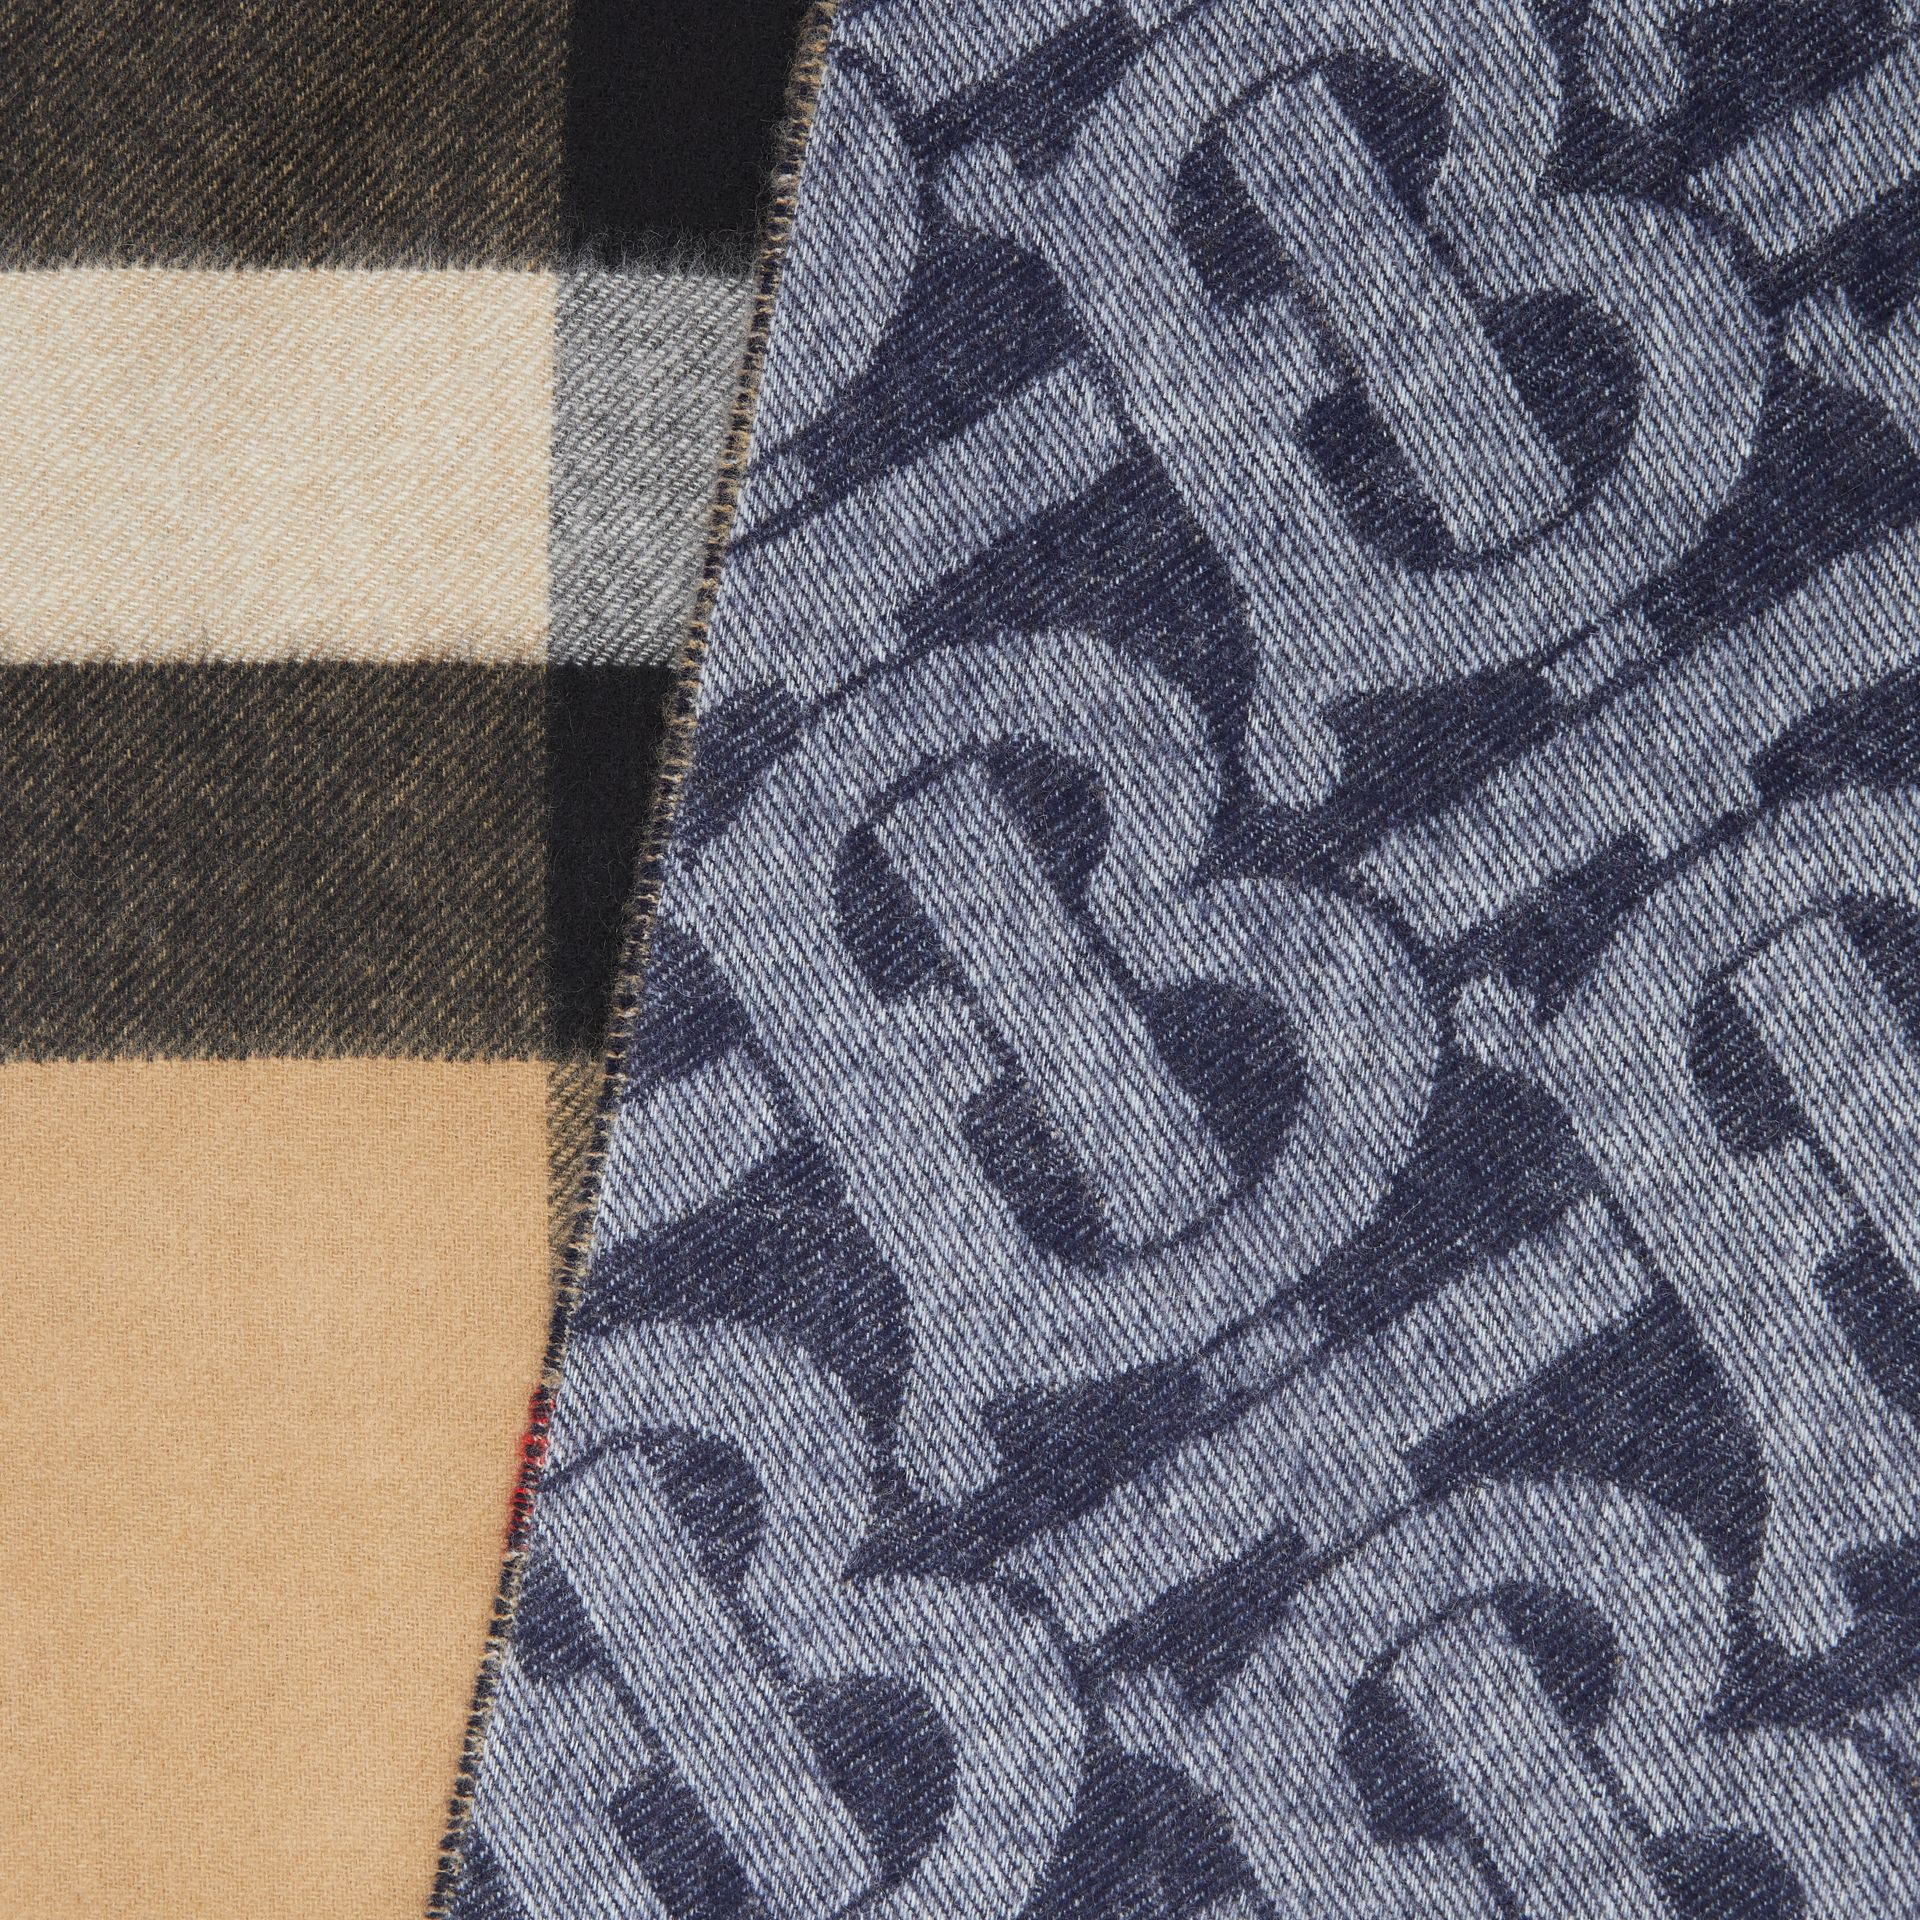 Reversible Check and Monogram Cashmere Scarf in Indigo | Burberry - gallery image 1